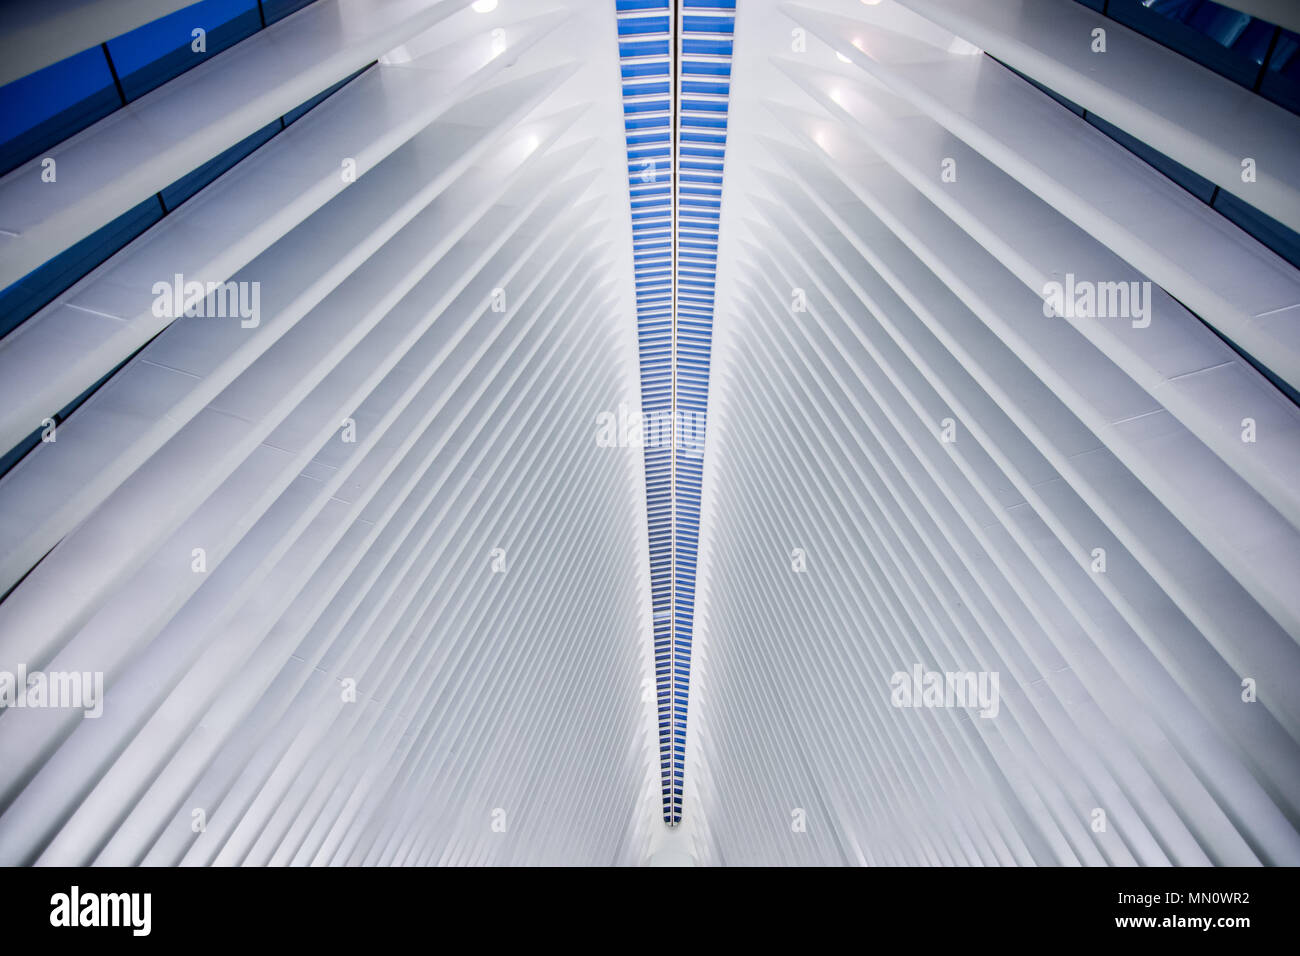 New York, US - March 29, 2018:  The famous Westfield shopping mall at world trade center in New York City Stock Photo